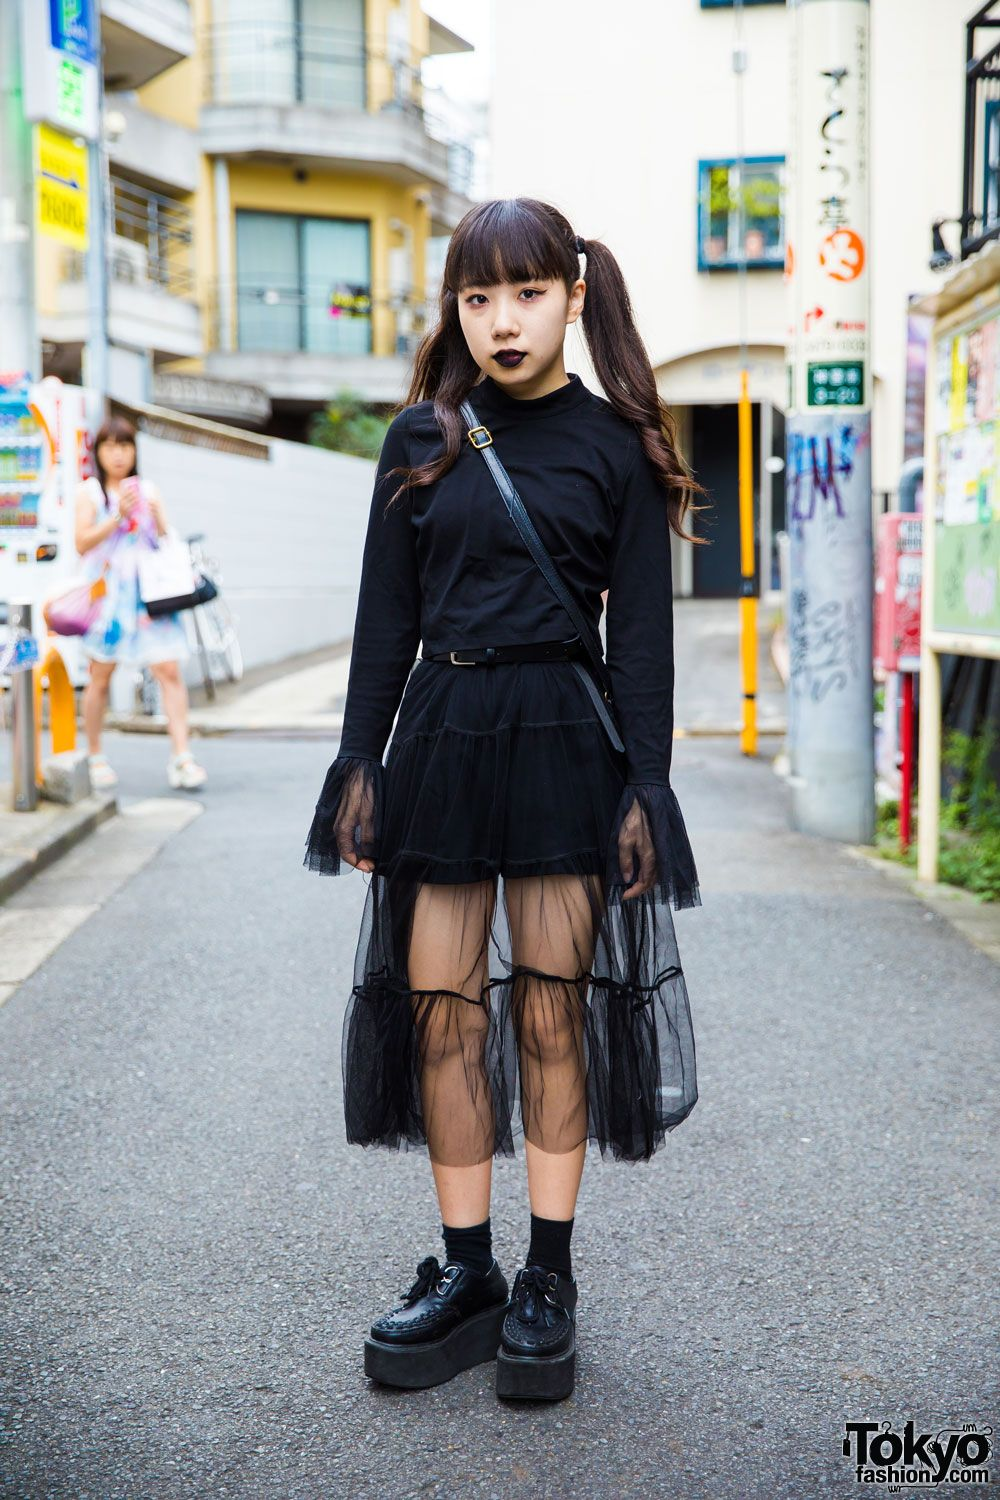 4b7a789b0 Bemi's all black fashion style features a vintage sweater with extra long  sleeves and sheer cuff, a black sheer skirt from Nadia Harajuku, black  socks, ...